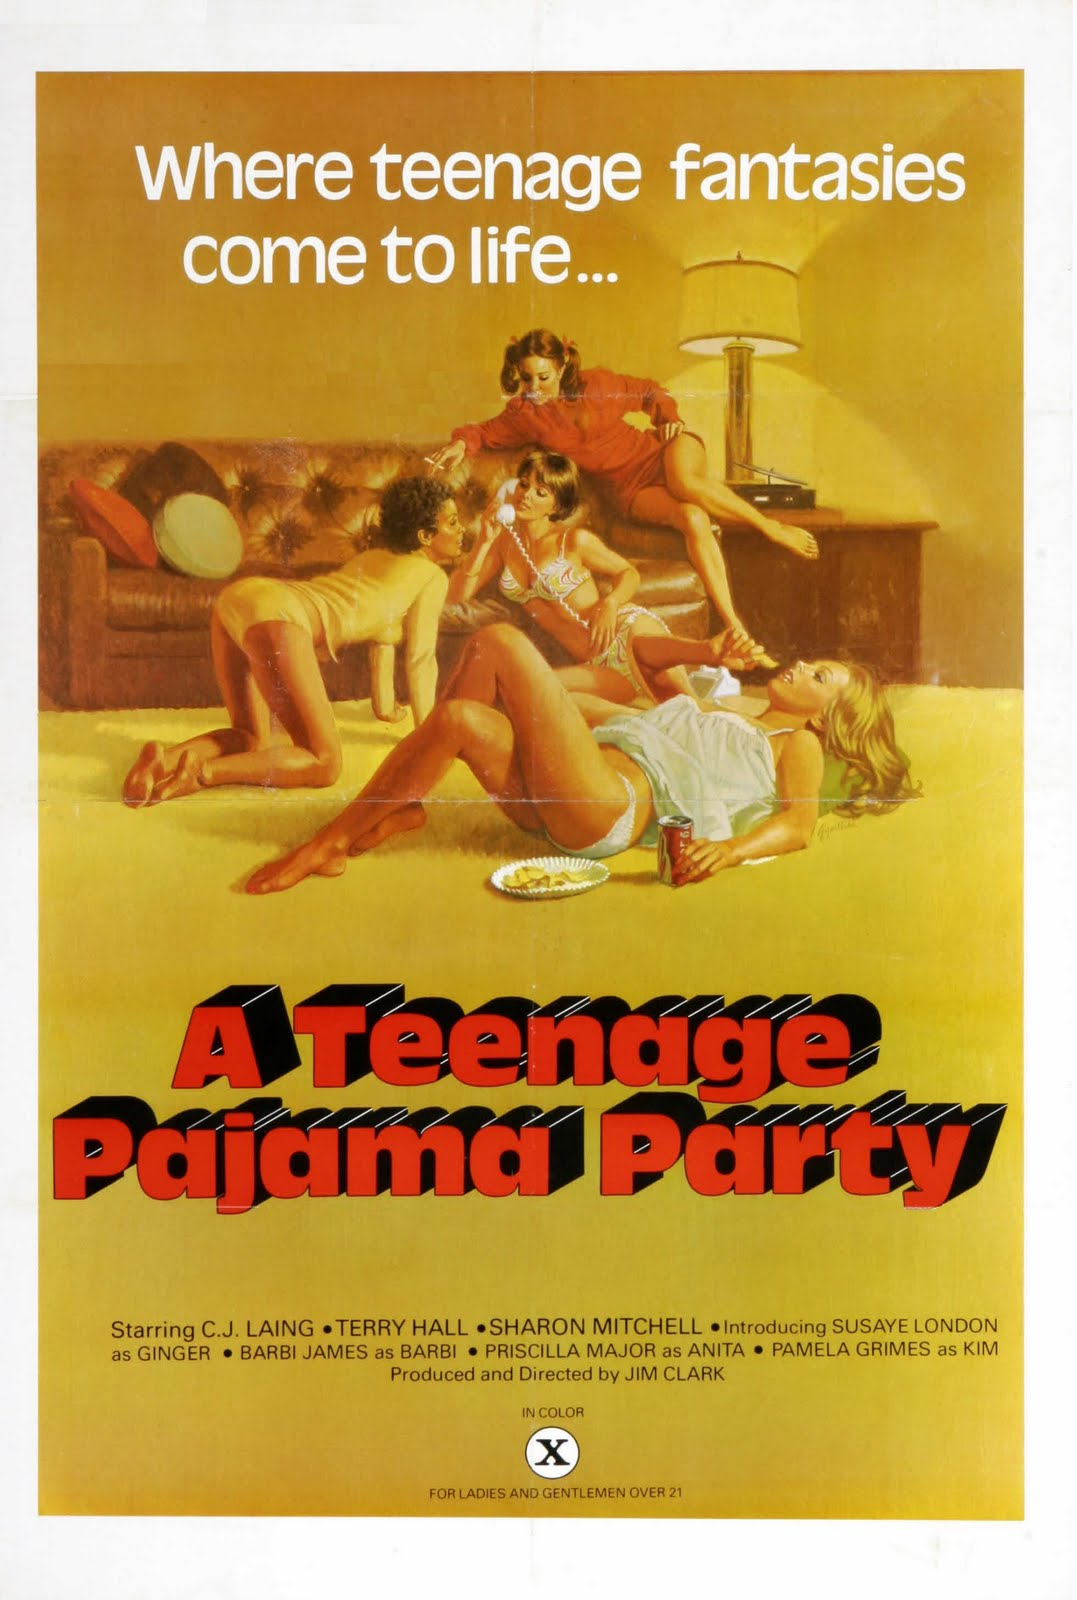 Teenage Pajama Party movie